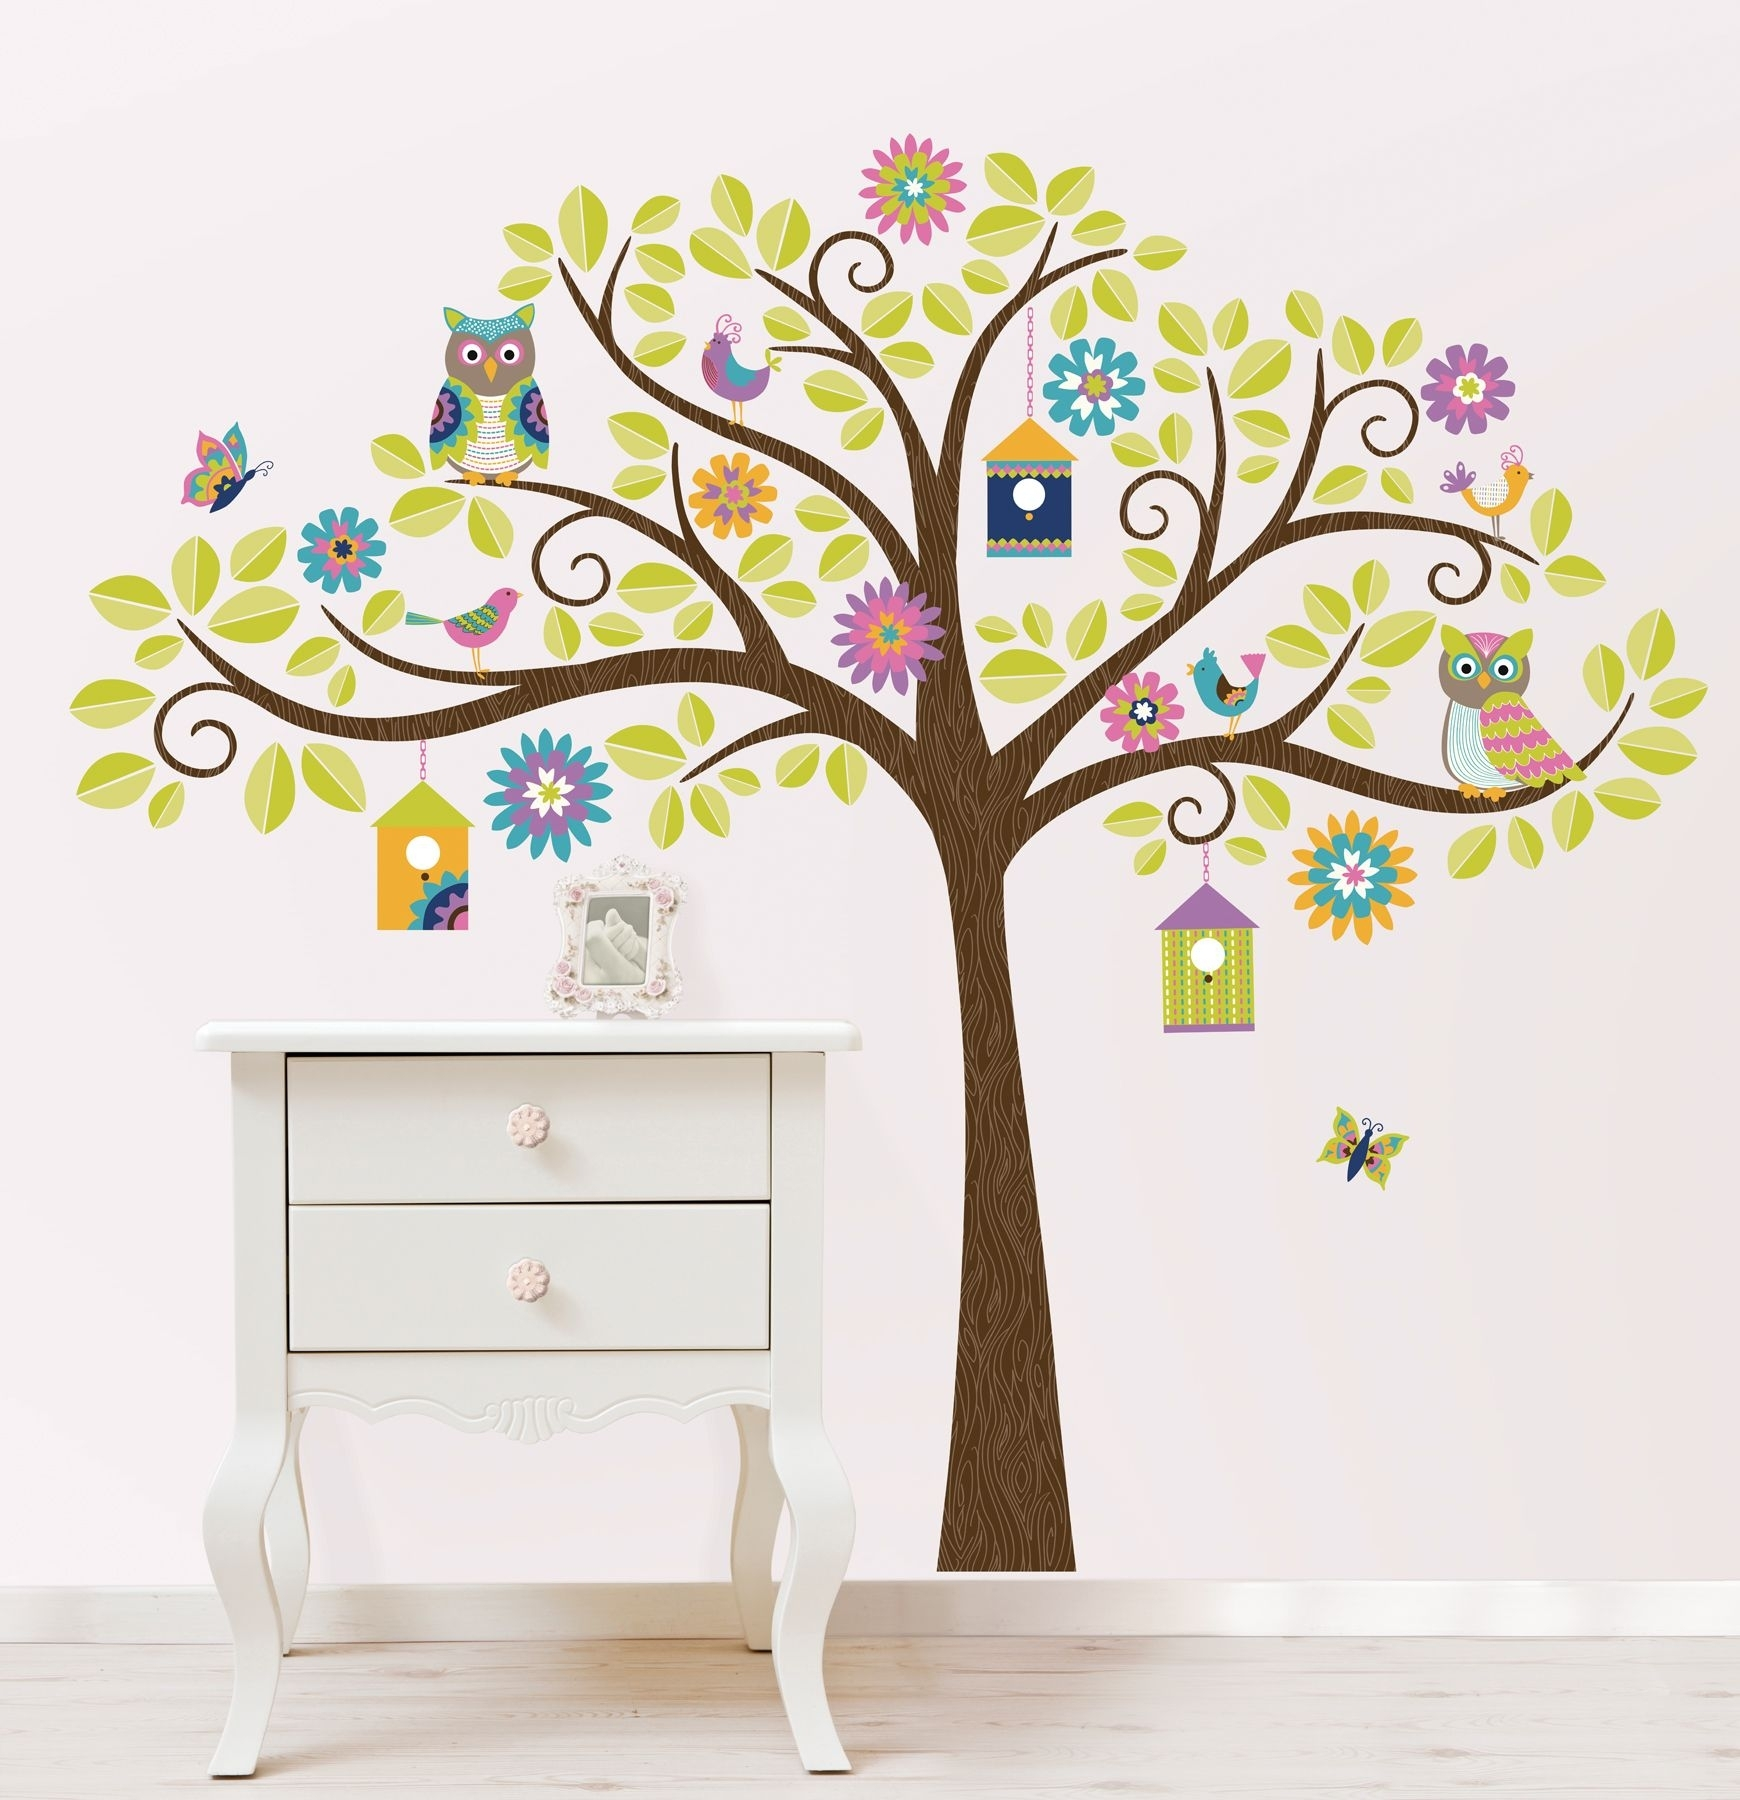 Hoot And Hang Out Tree Wall Art Sticker Kit With Best And Newest Wall Tree Art (View 7 of 20)